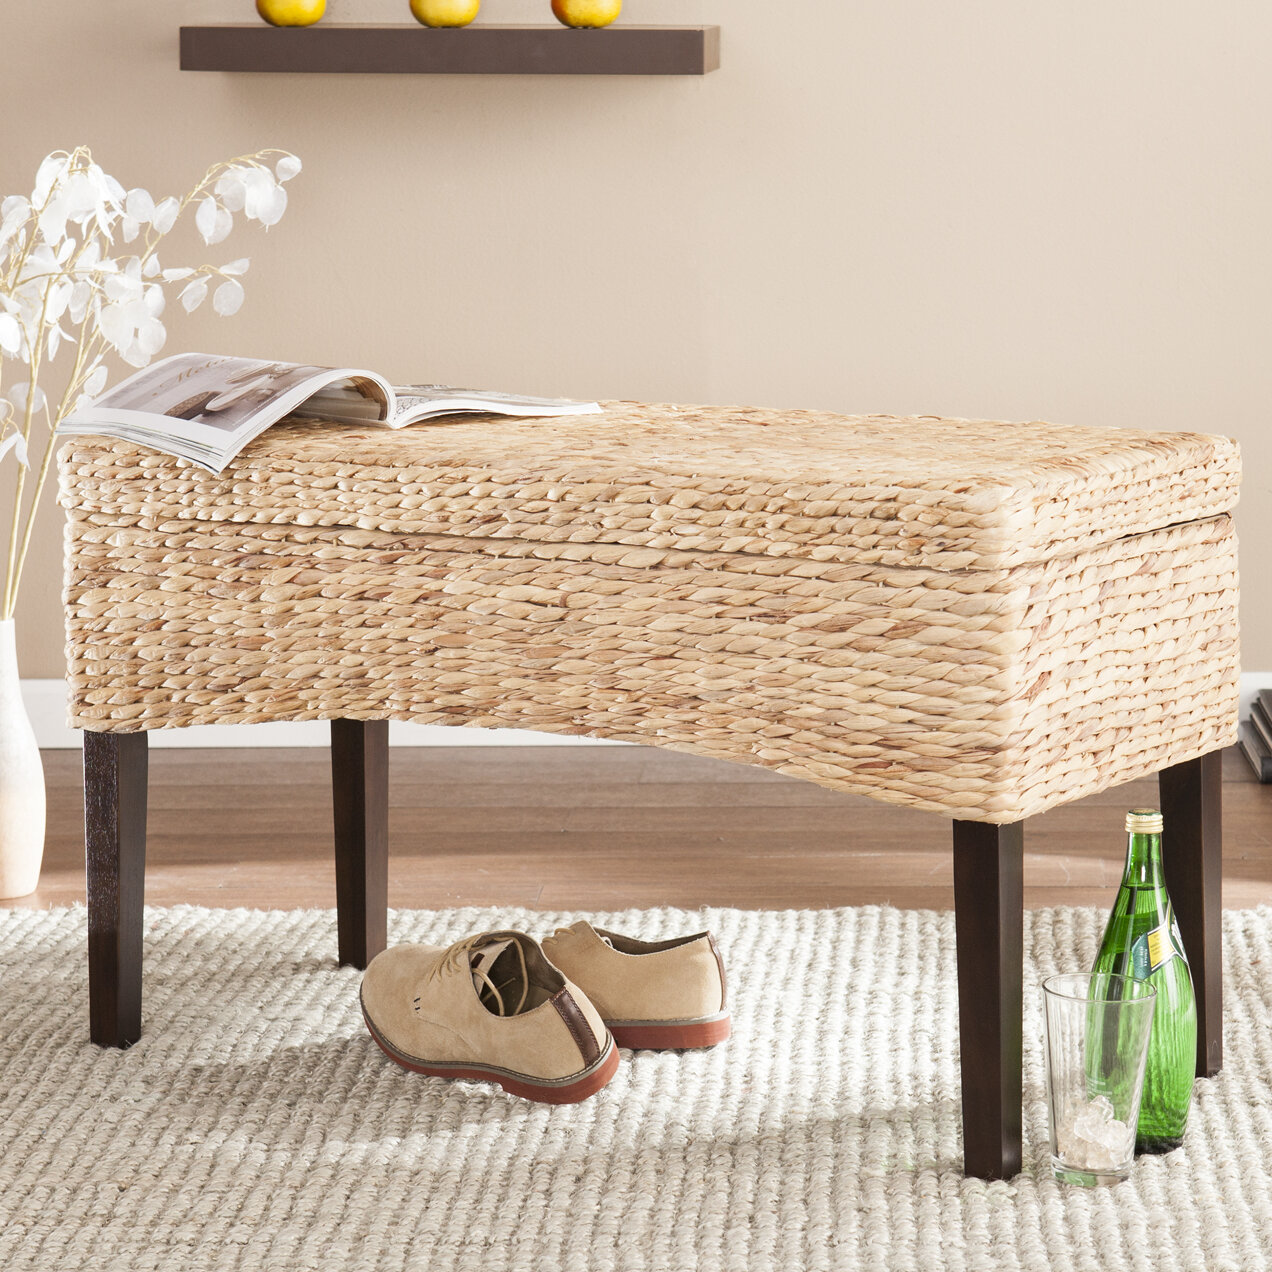 Enjoyable Sunni Hyacinth Storage Entryway Bench Gmtry Best Dining Table And Chair Ideas Images Gmtryco